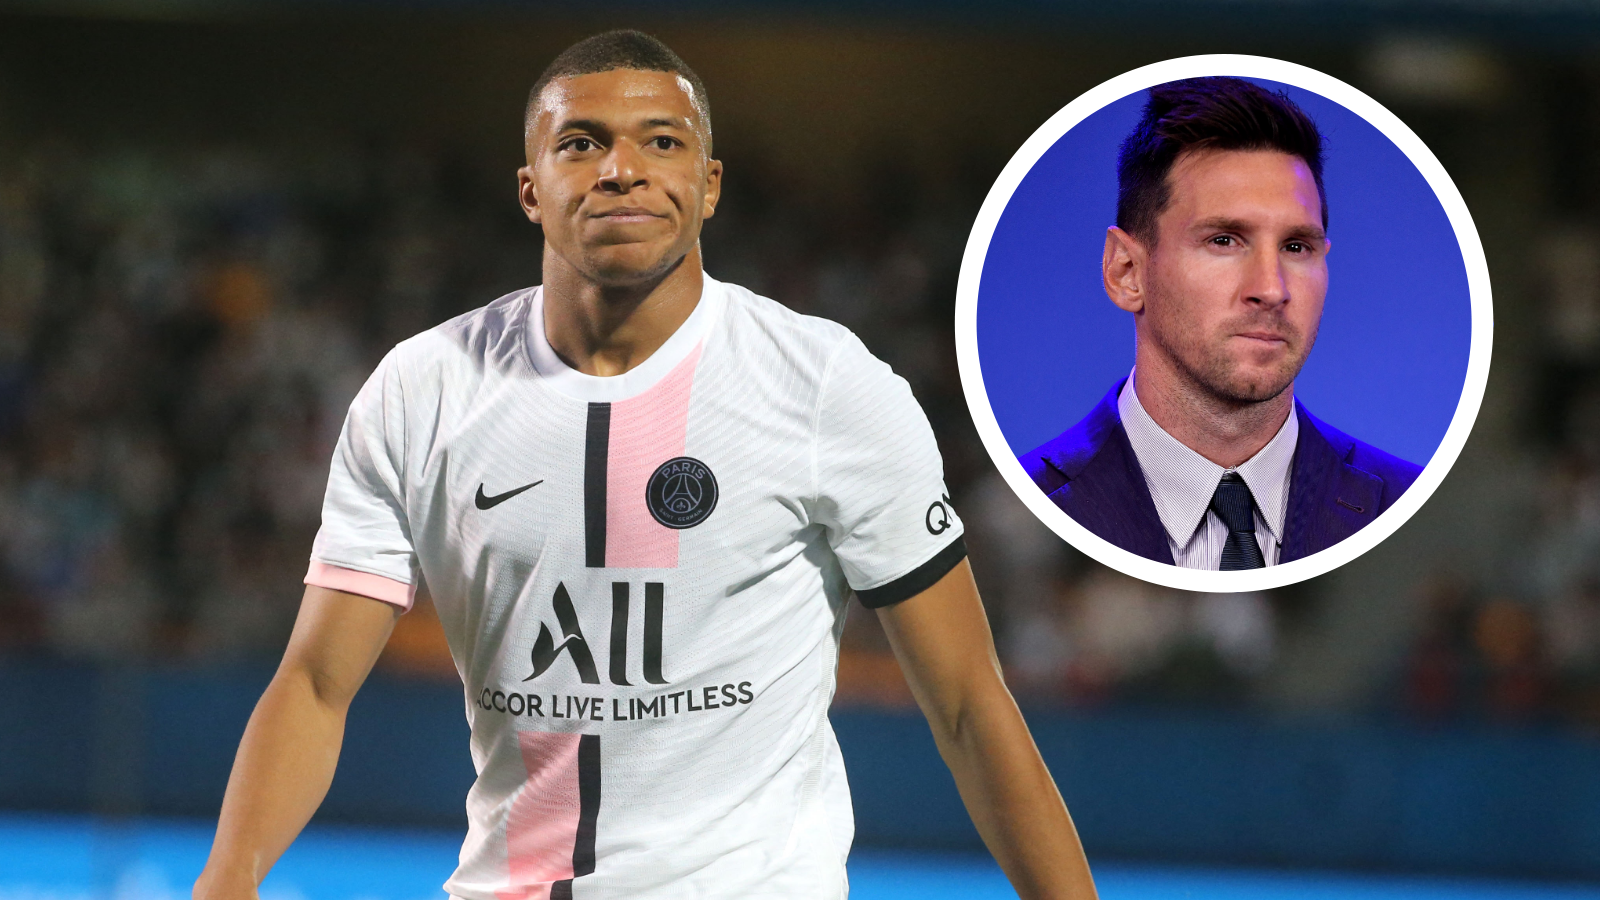 'There's no excuse for him now' - Mbappe has to stay at PSG after Messi signing, insists Al-Khelaifi